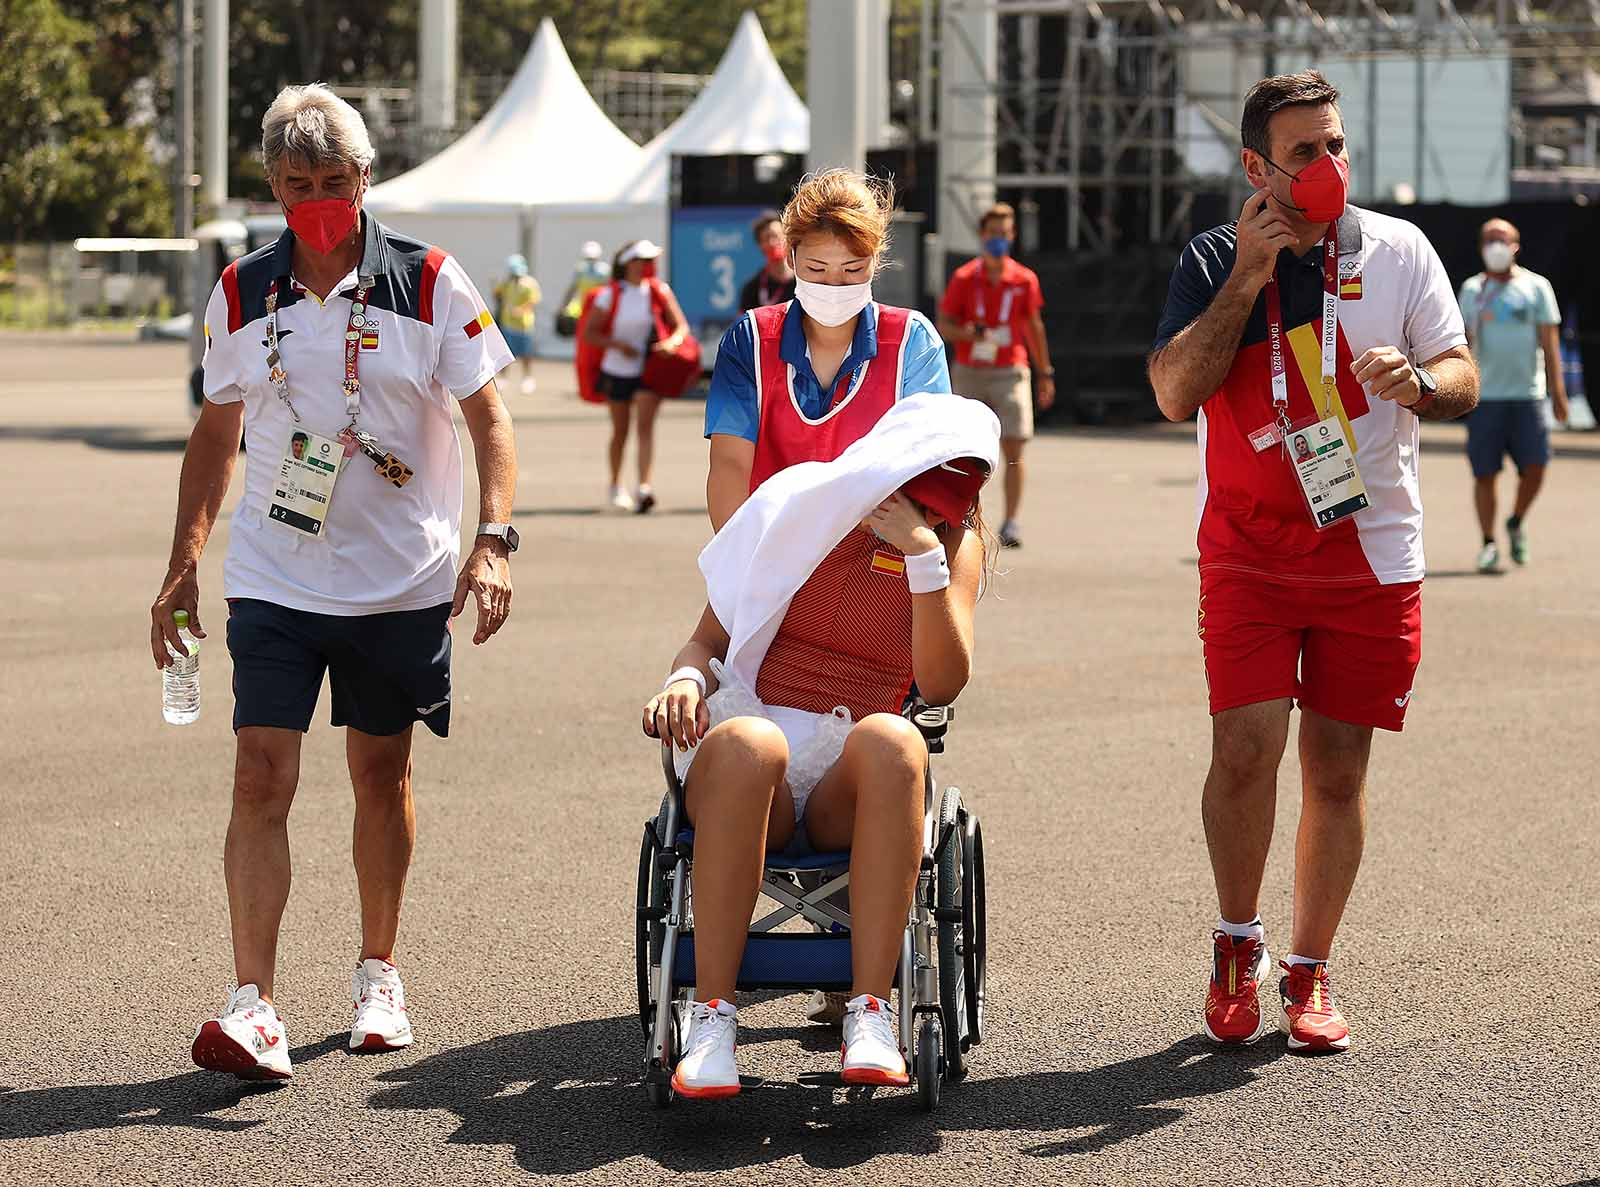 Paula Badosa of Team Spain is helped away from the court in a wheelchair after having to retire from her women's singles quarterfinal match on Wednesday.